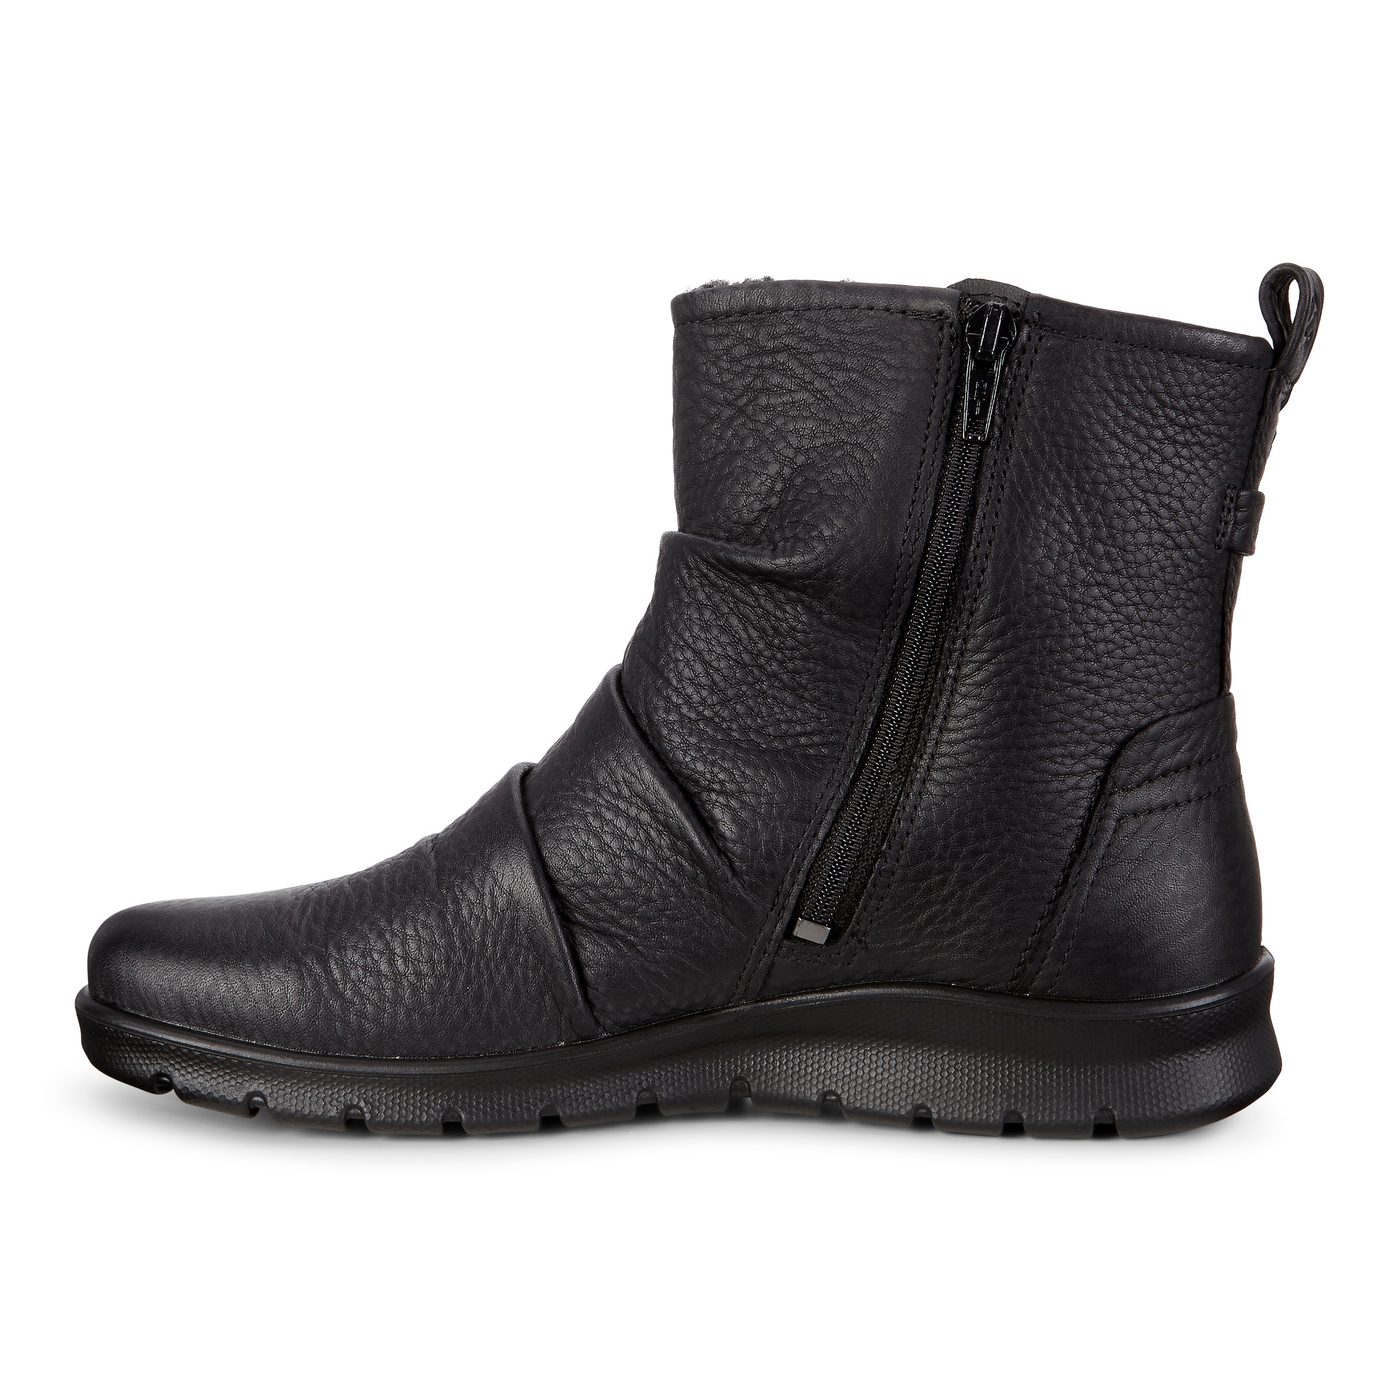 ECCO BABETT BOOT Ankle Boot HM